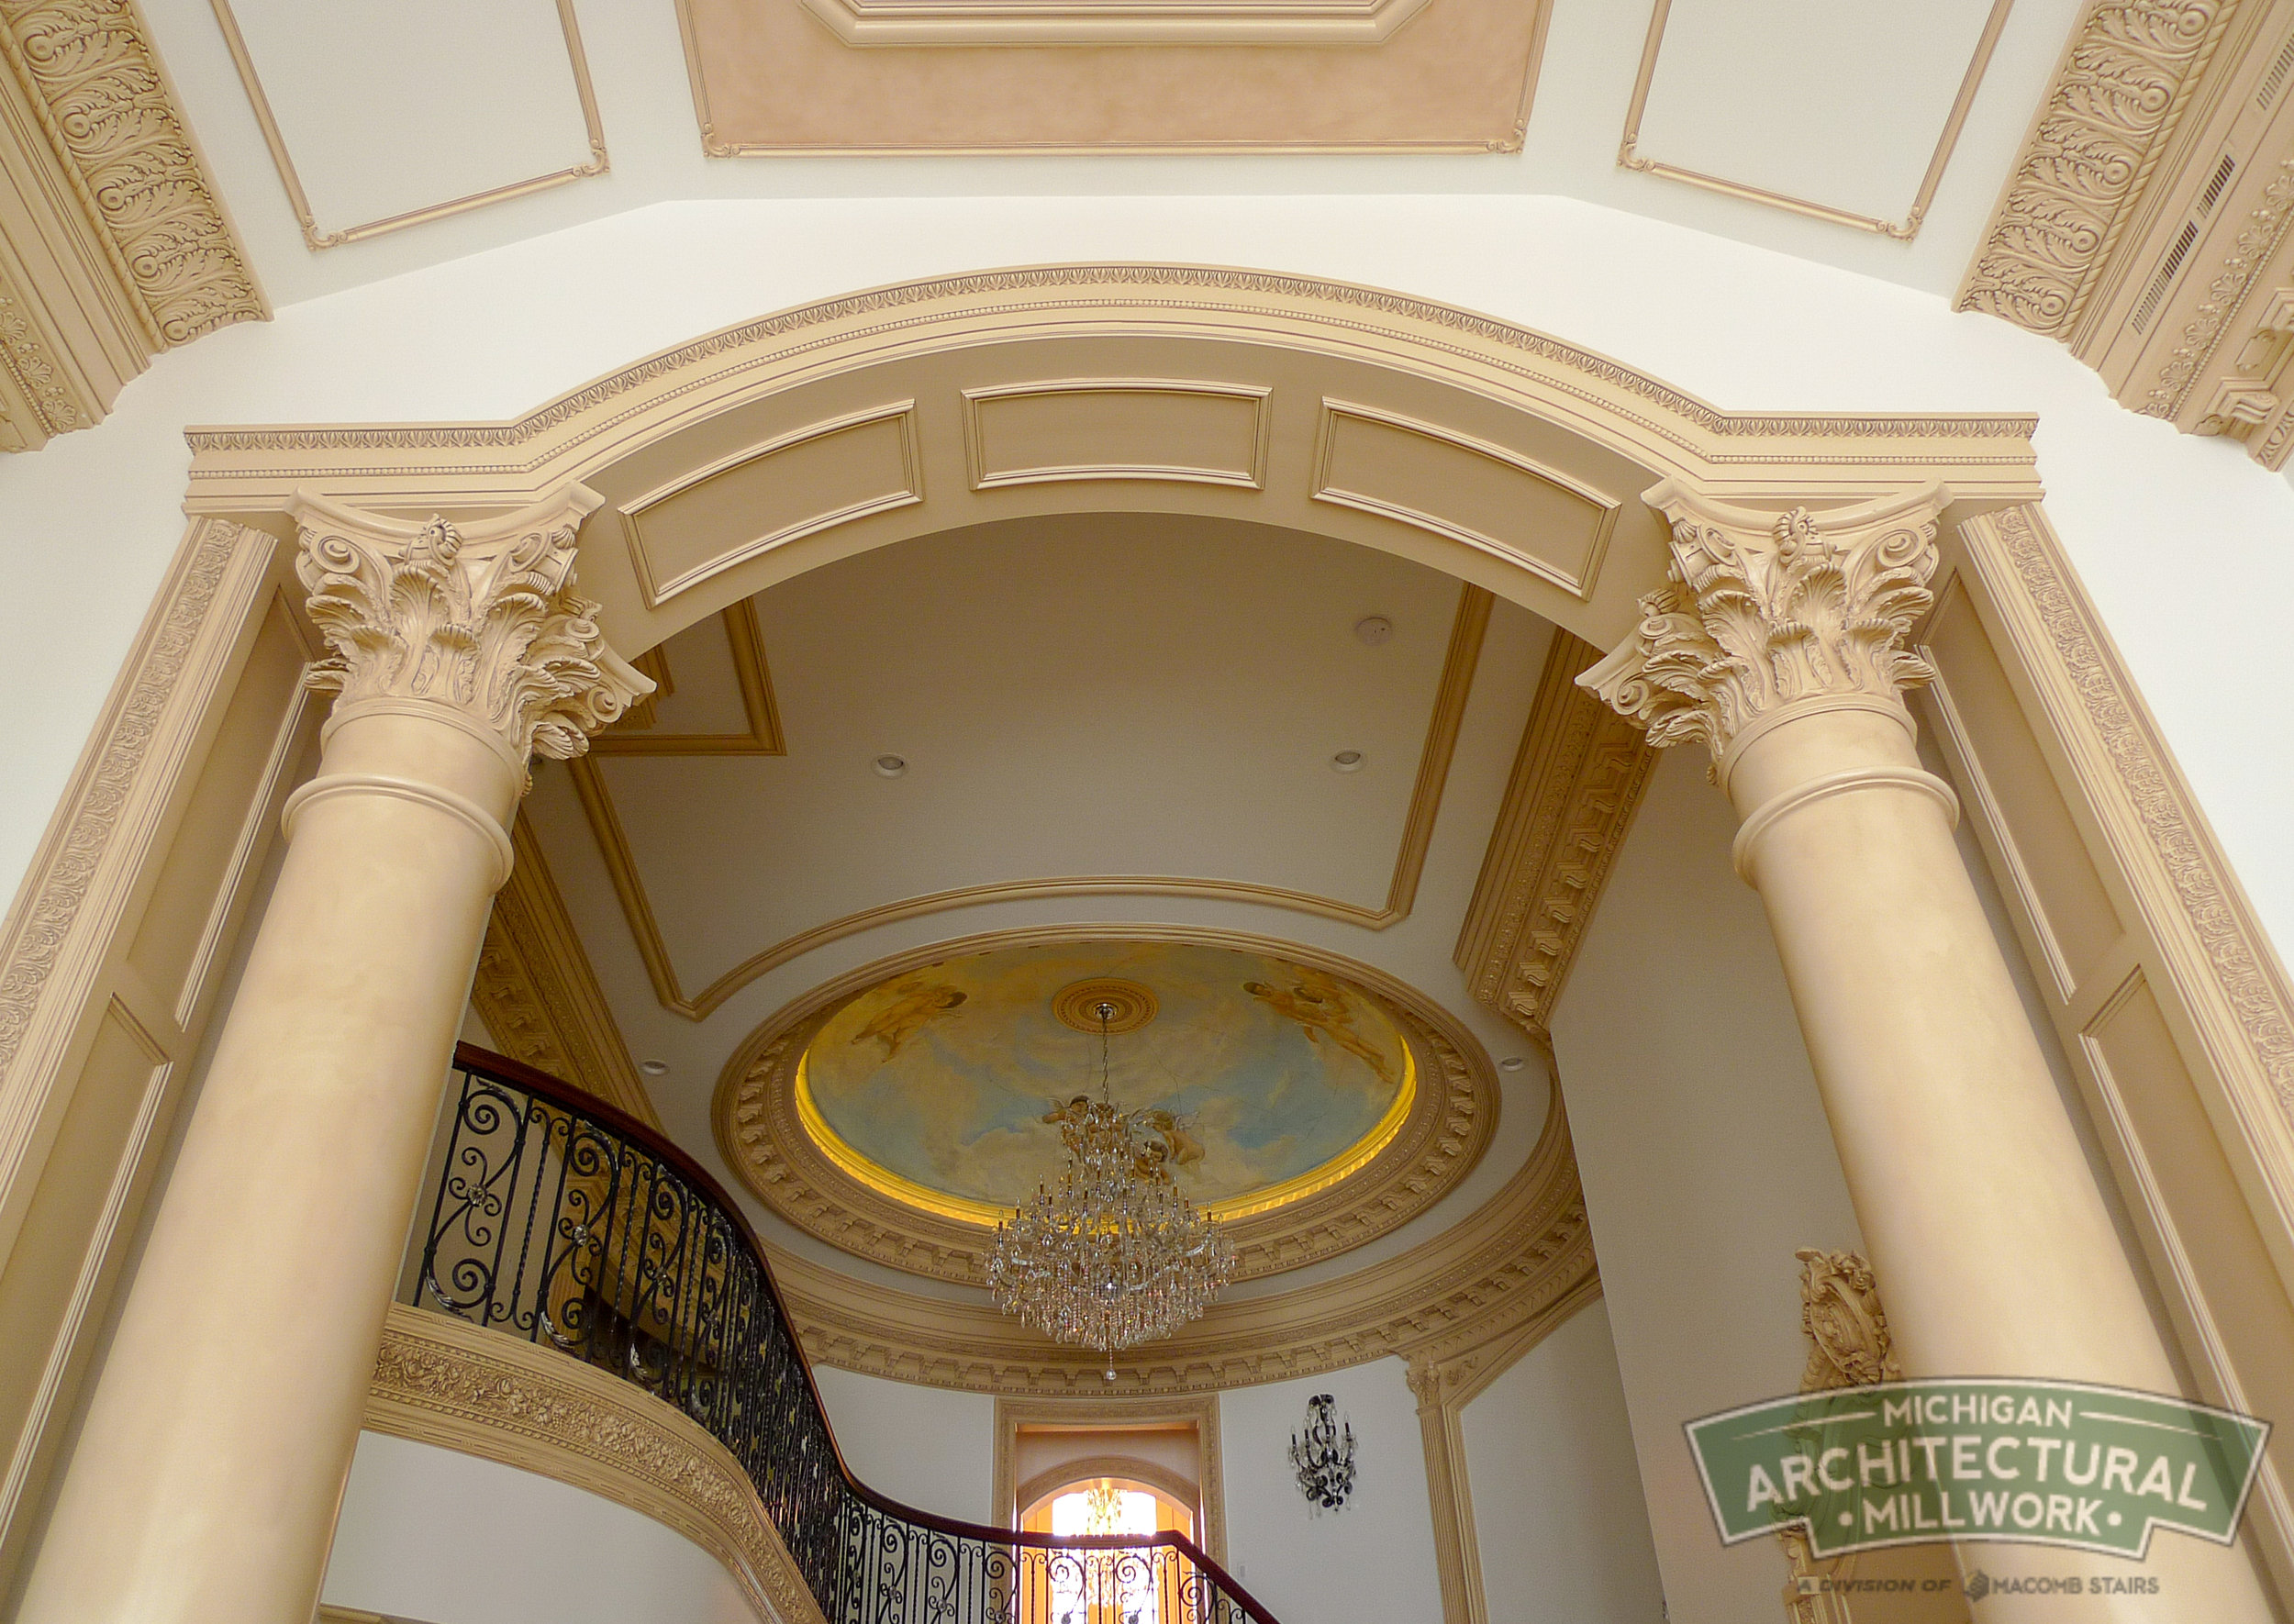 Michigan Architectural Millwork- Moulding and Millwork Photo-150.jpg